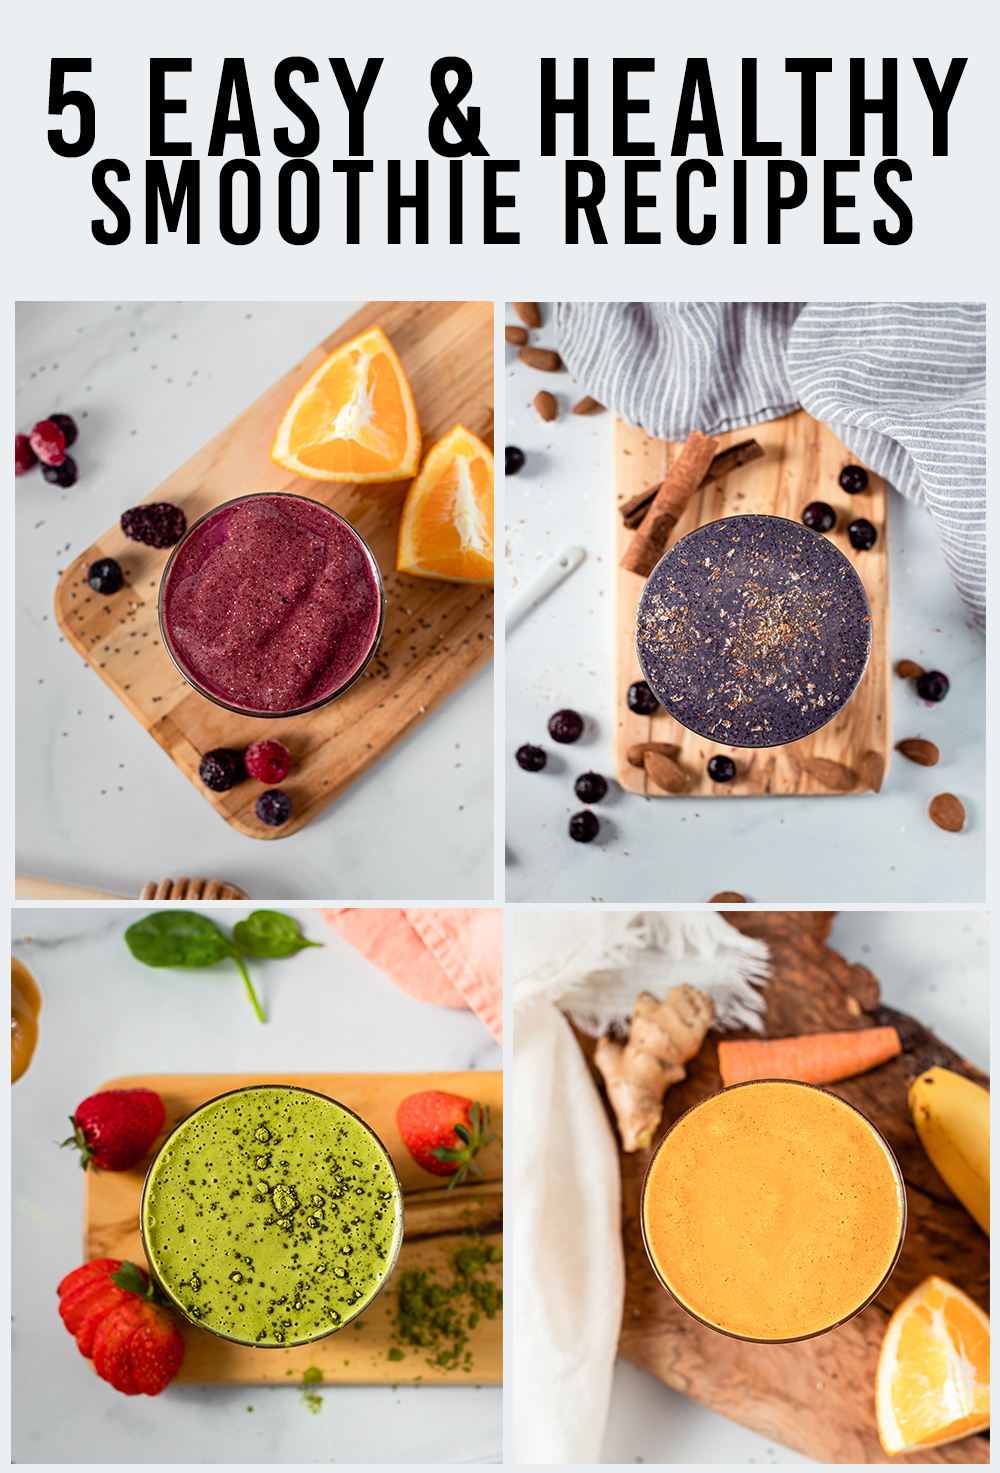 Healthy and Easy Smoothie Recipes to lose weight